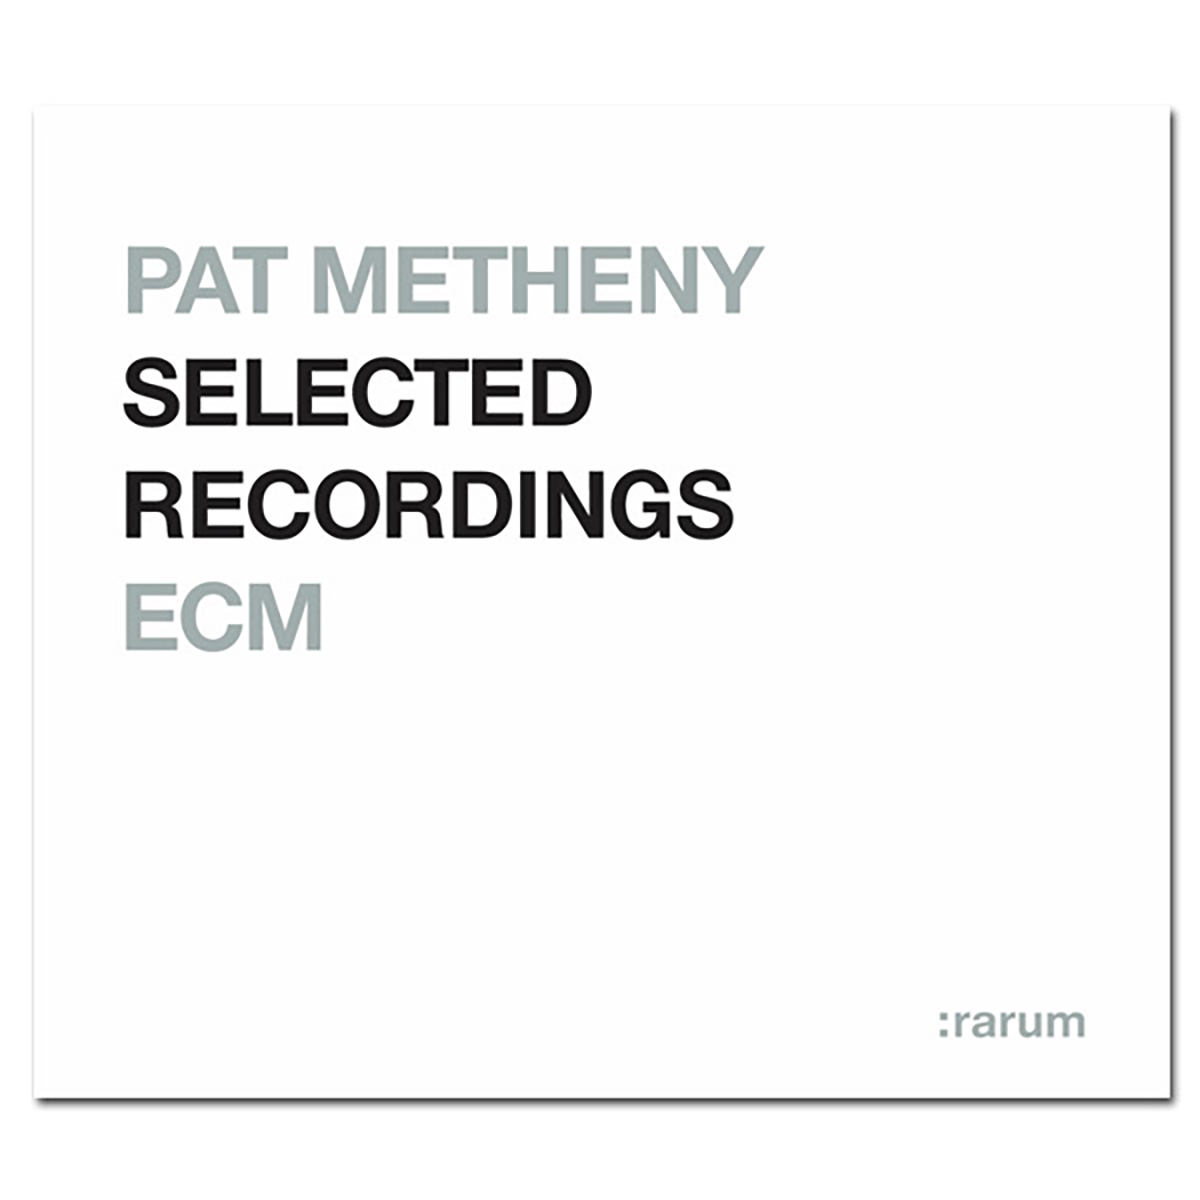 Pat Metheny - Rarum IX / Selected Recordings - Digital Download